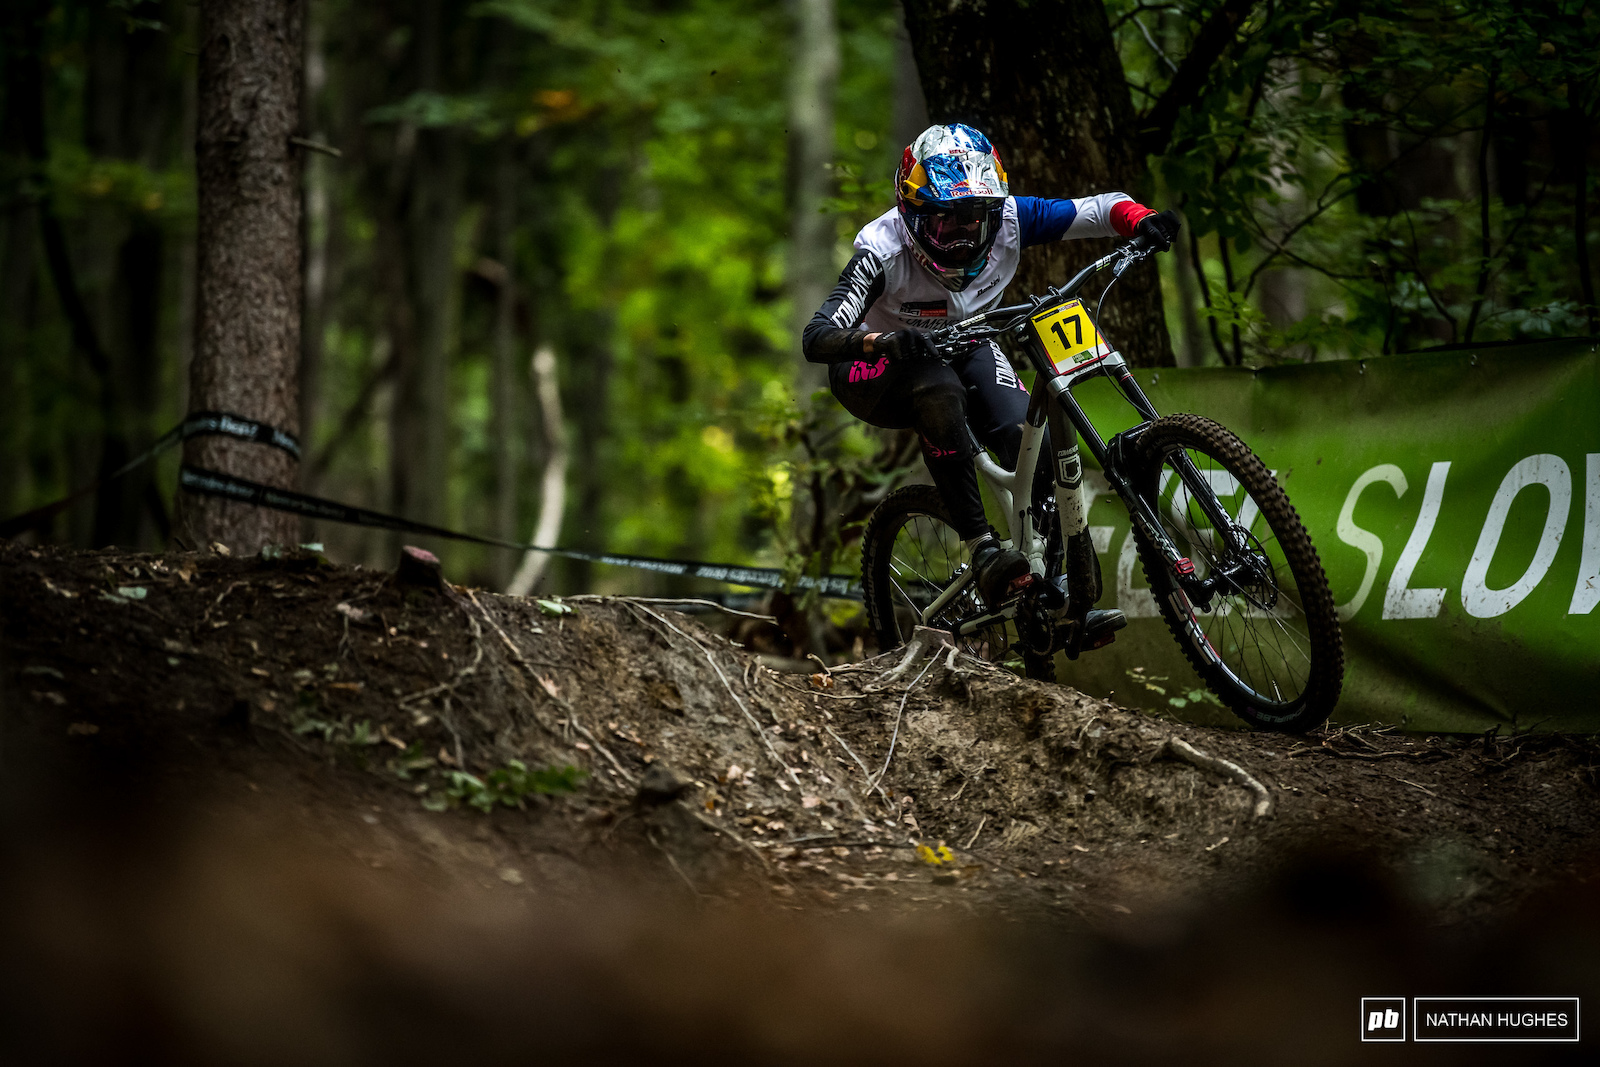 Mistakes cost Myriam Nicole in a field of top-flight female racers deeper than we ve seen in many years. 4th place for the ex-series leader but at least the plate can turn back to single digits heading to Portugal.